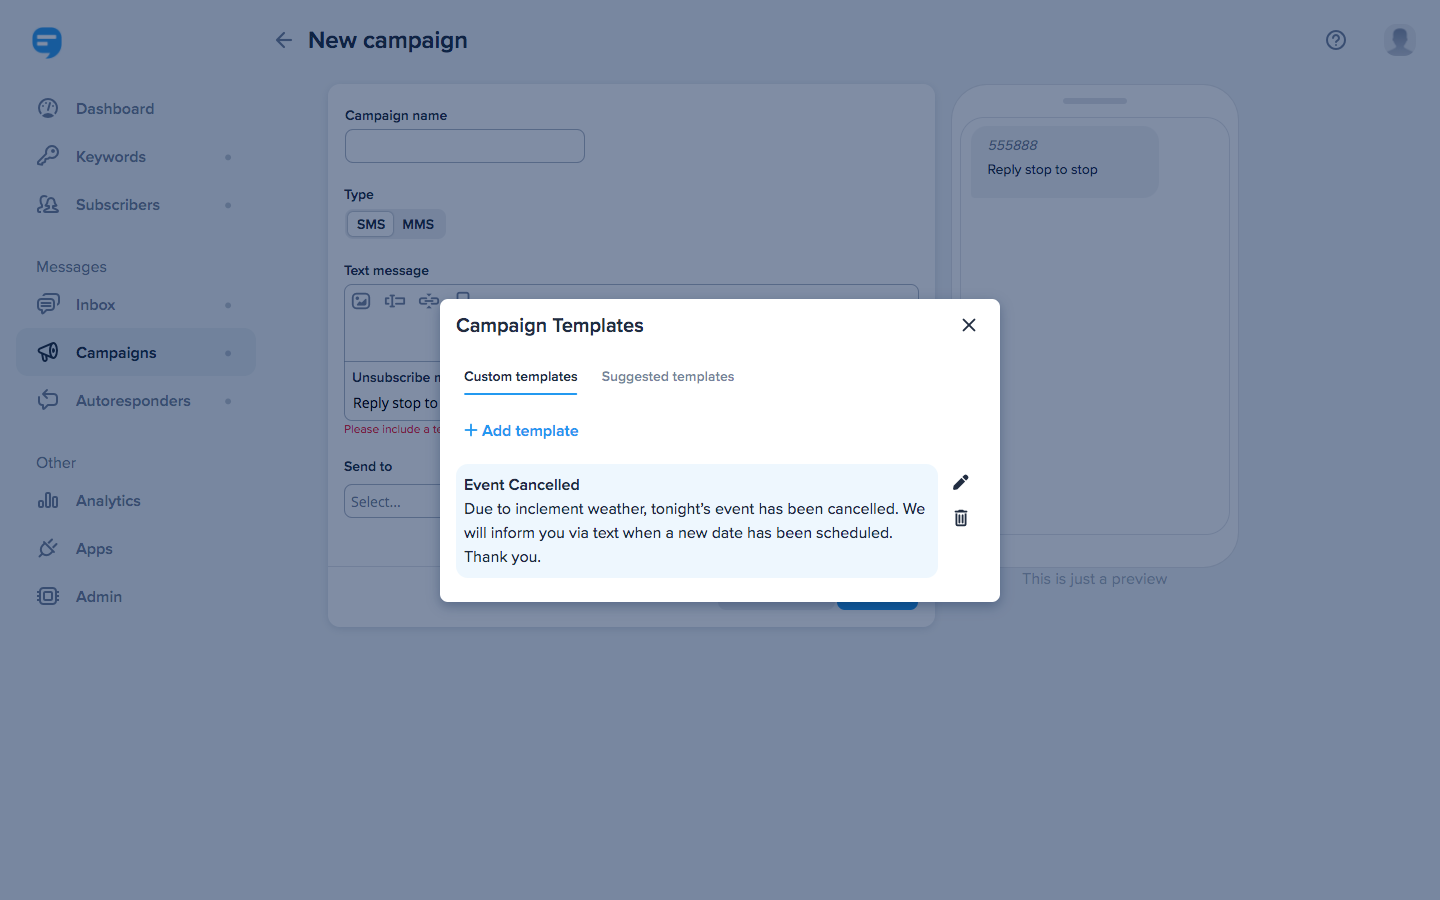 Save your frequently sent messages as templates and reuse them with the click of a button.